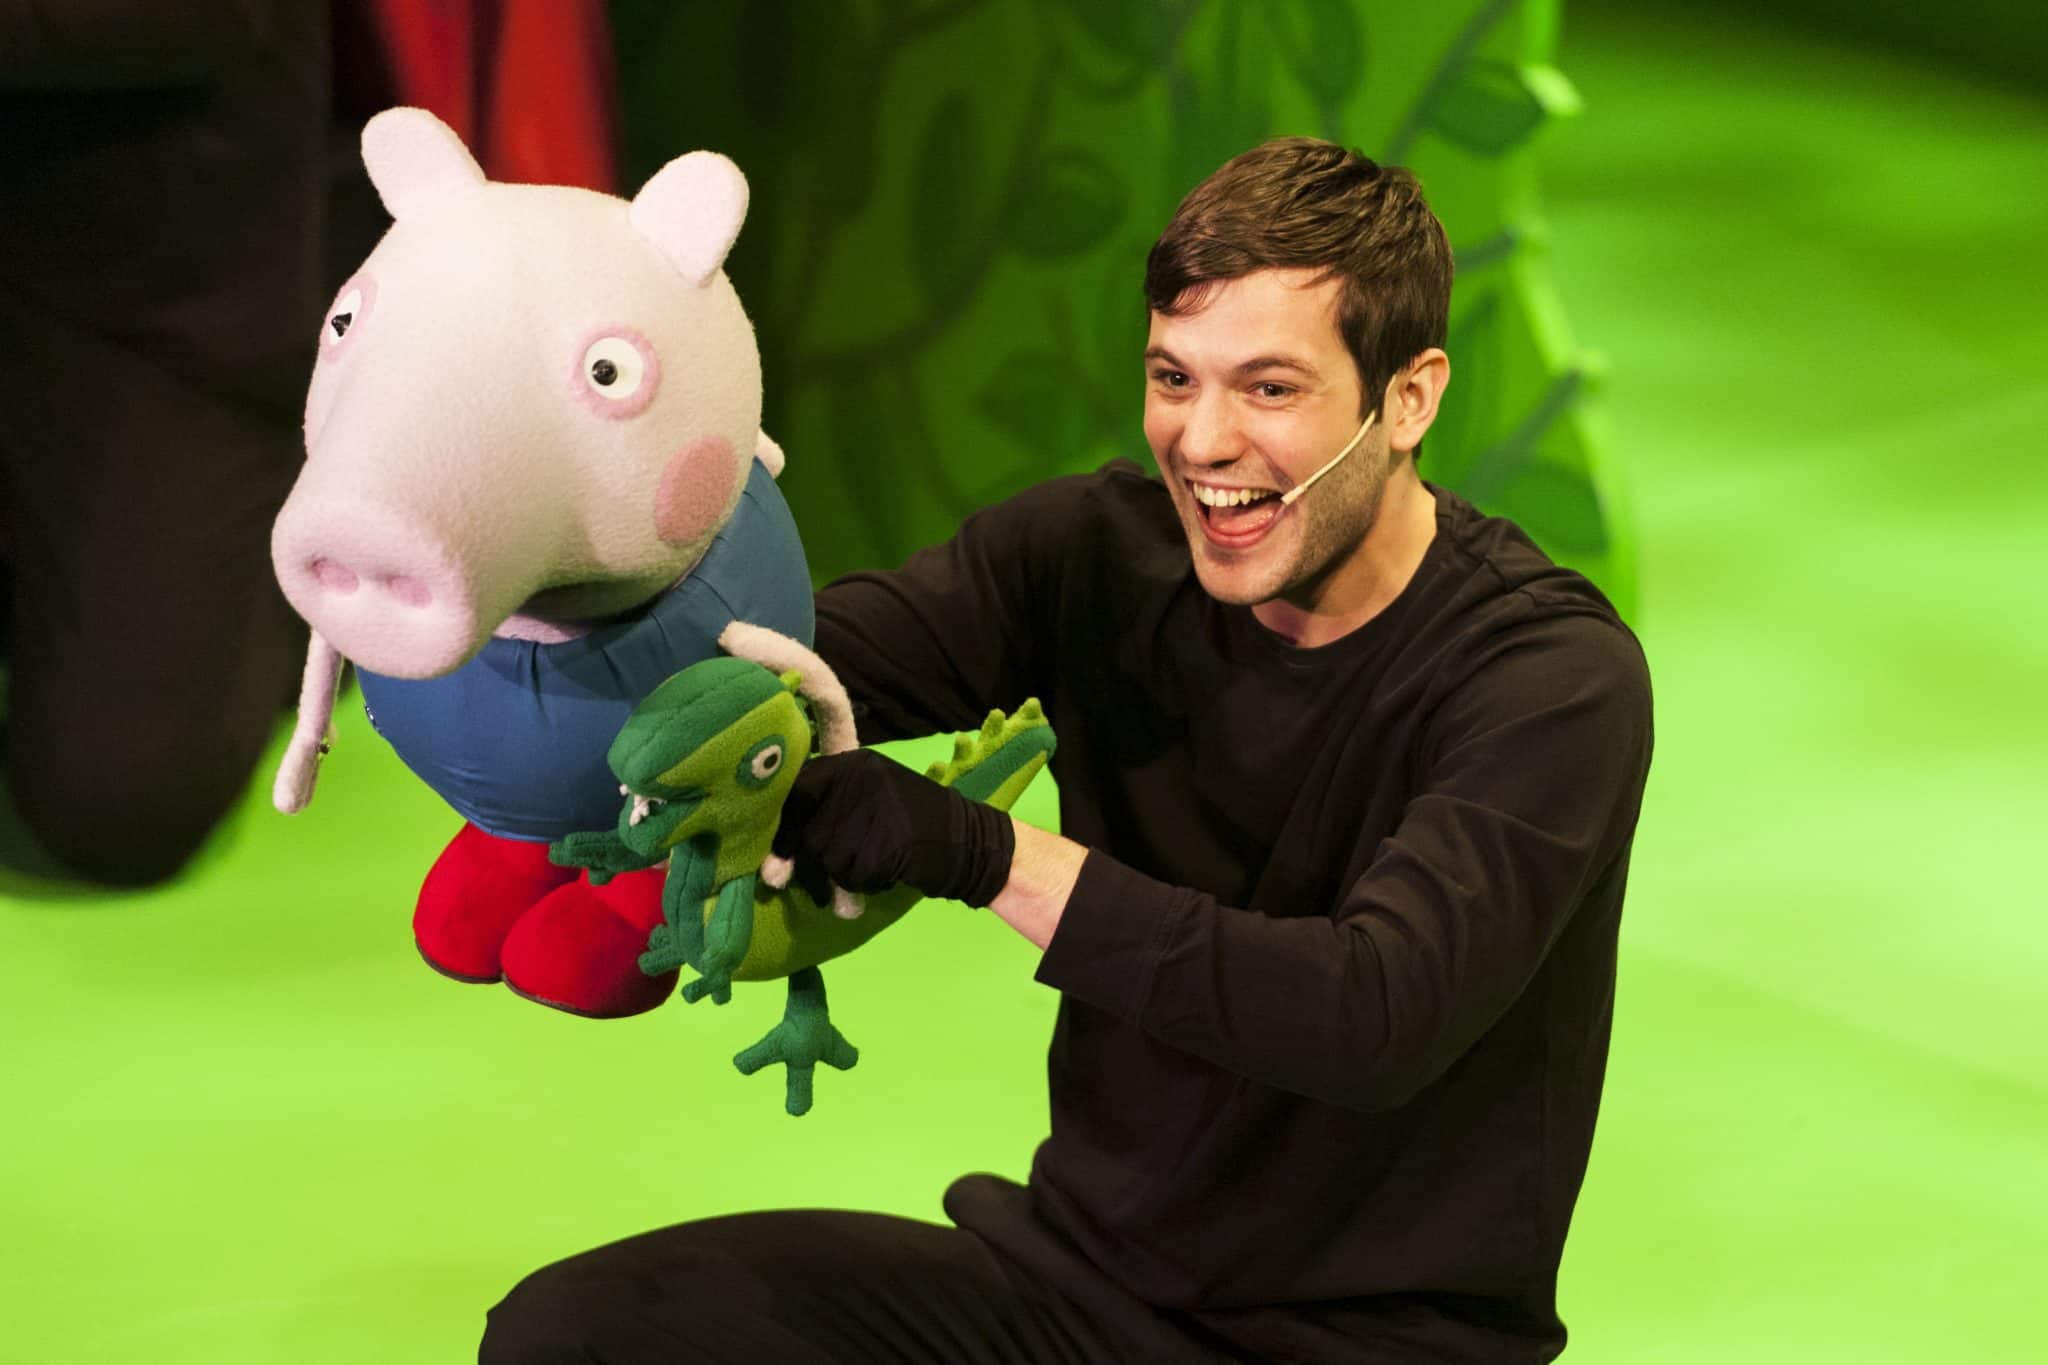 George from Peppa Pig's Surprise Live UK tour